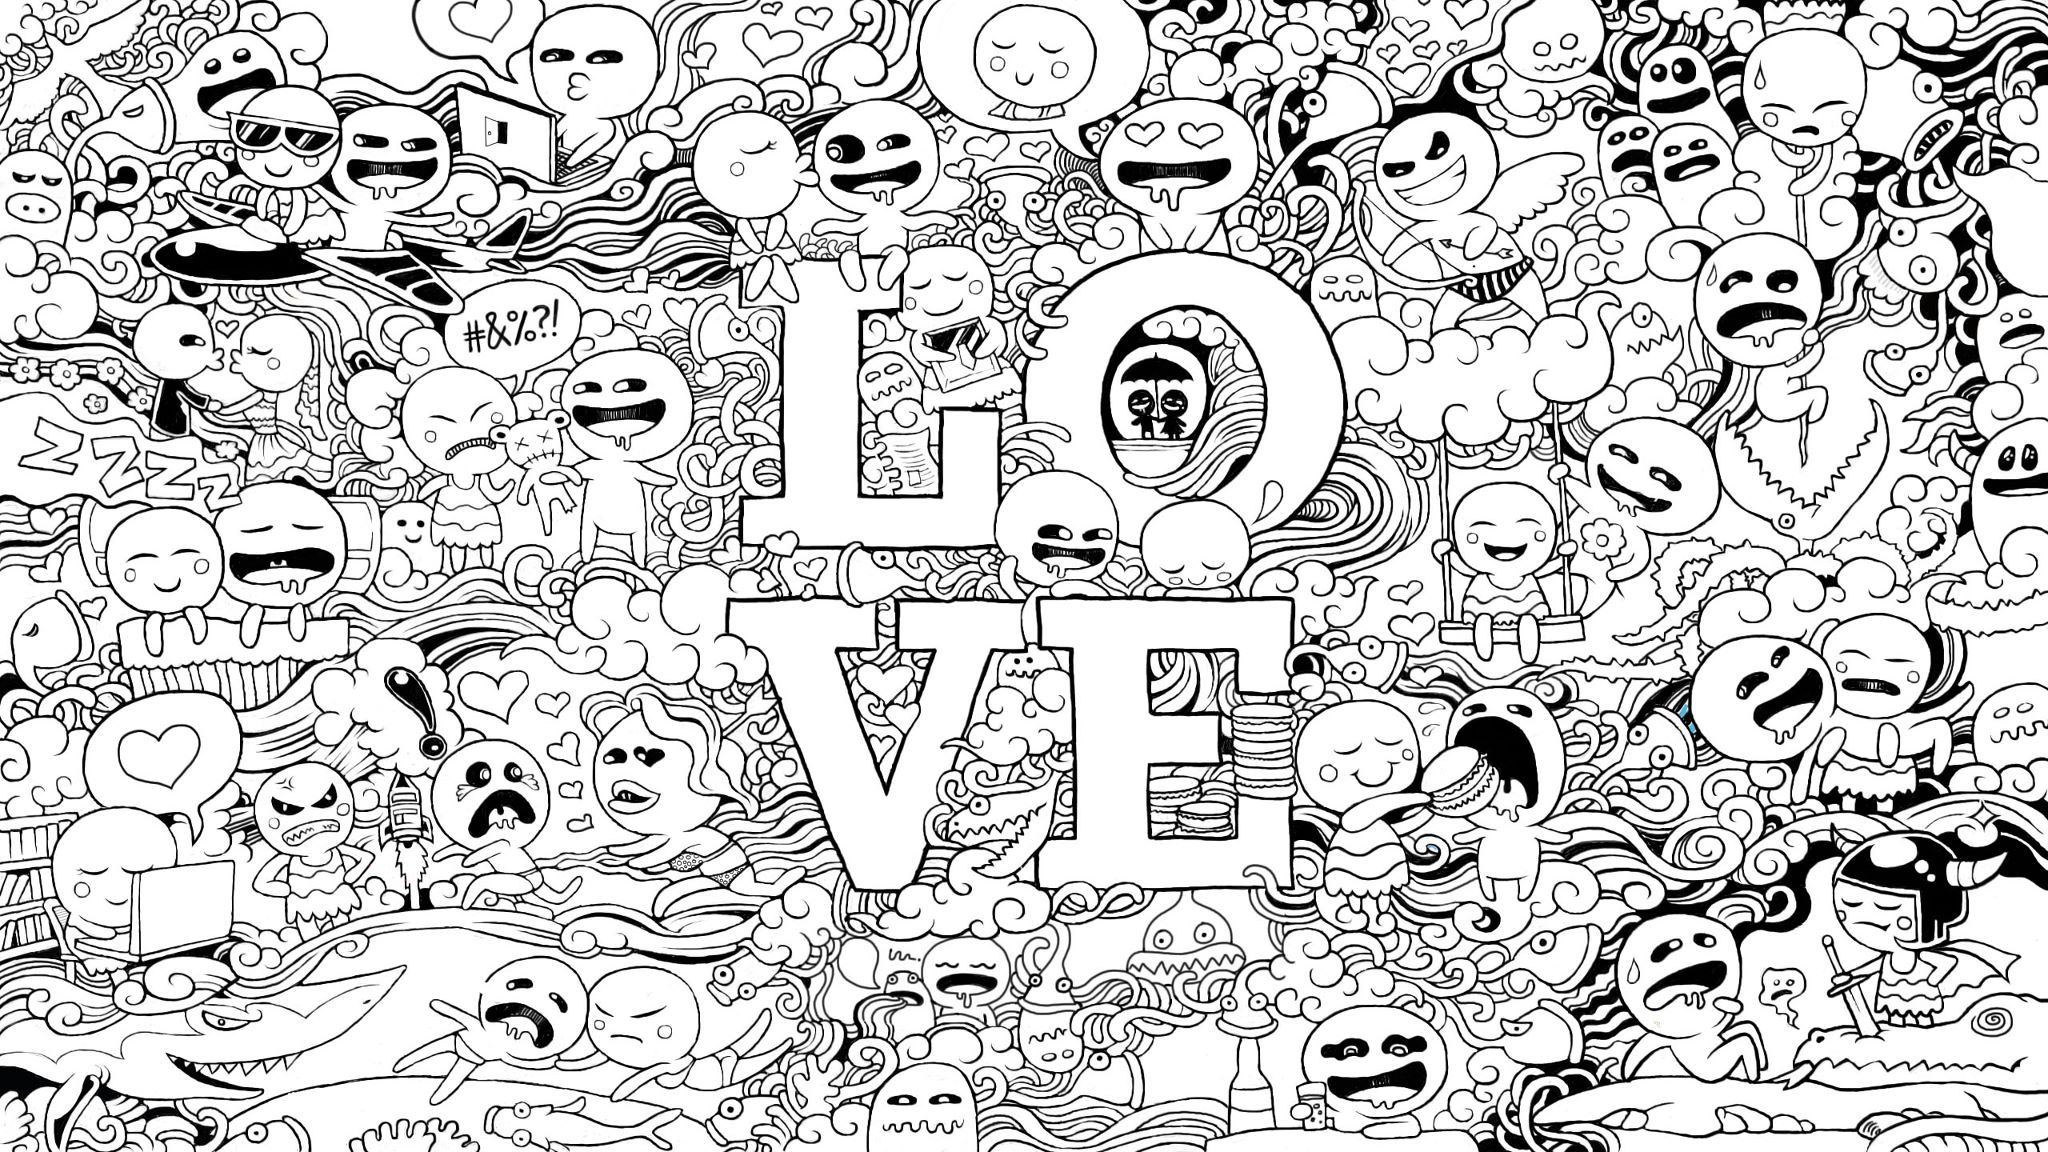 Pin by jessica santos on Printables | Wallpaper doodle ...